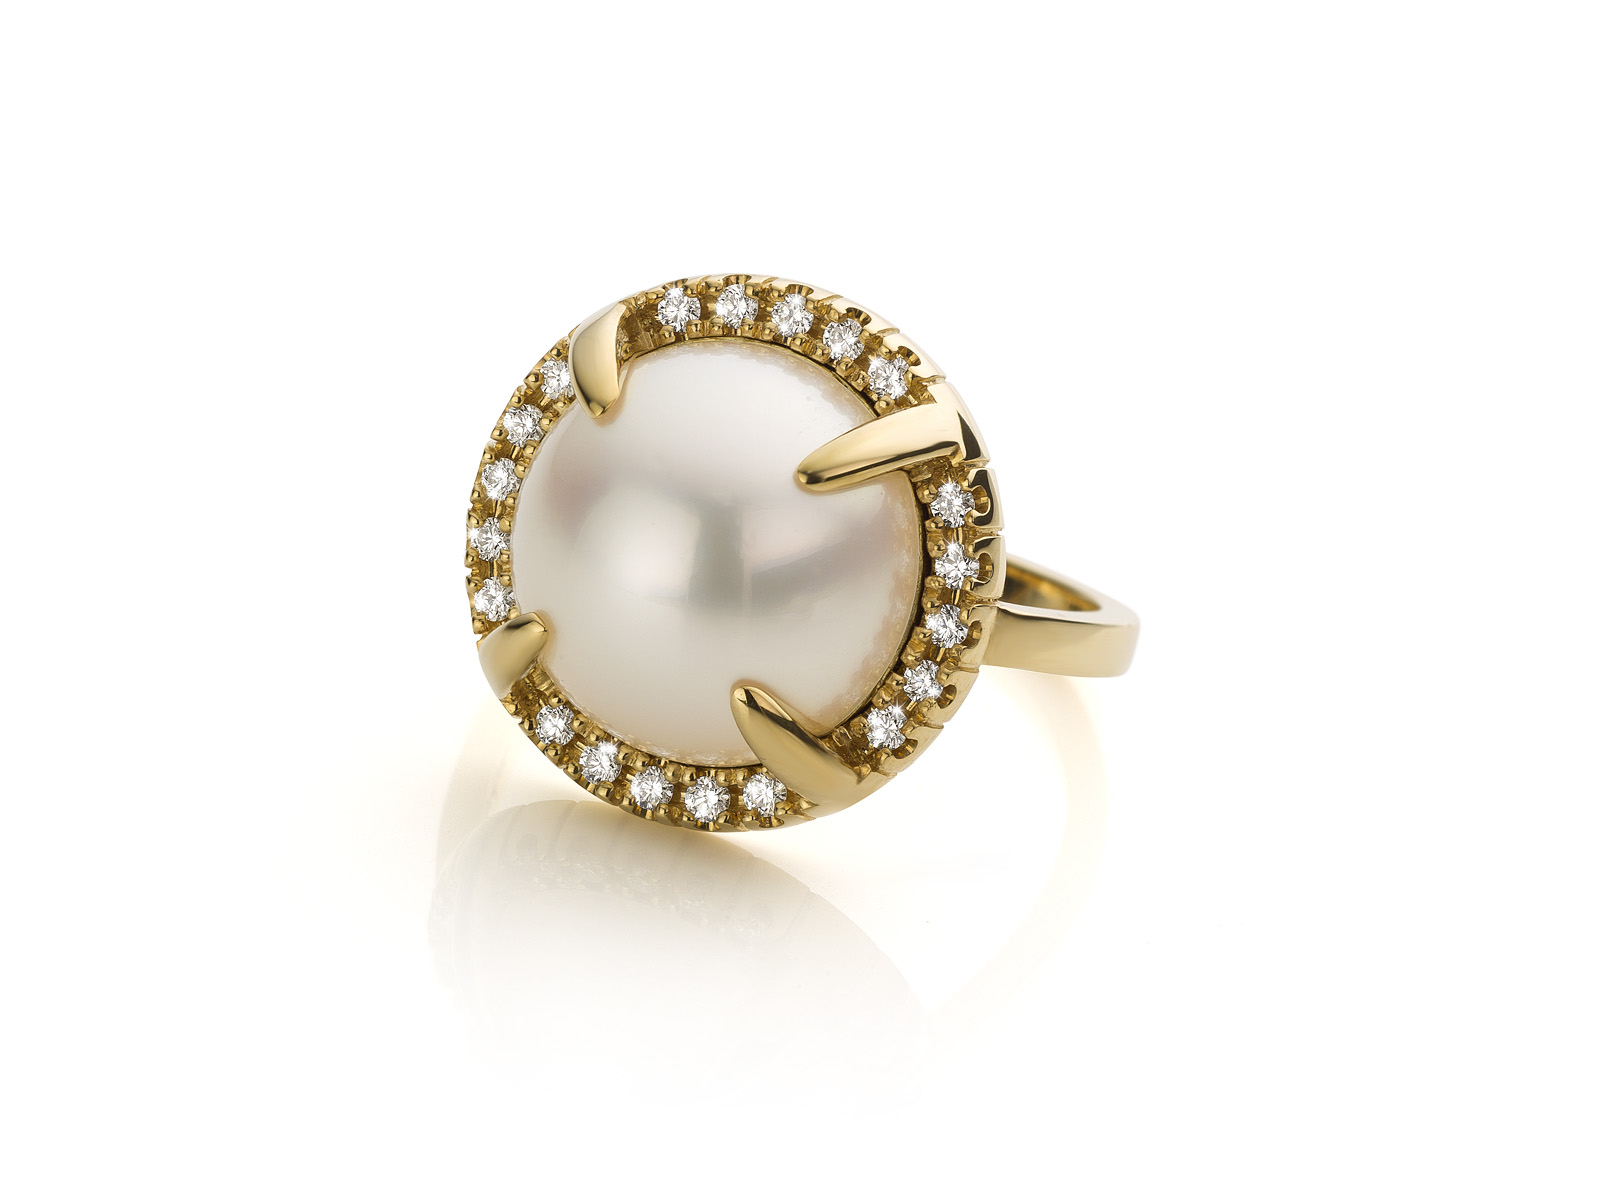 parel ring met tahitiparel in geelgouden ring mary-ann-pearl cober